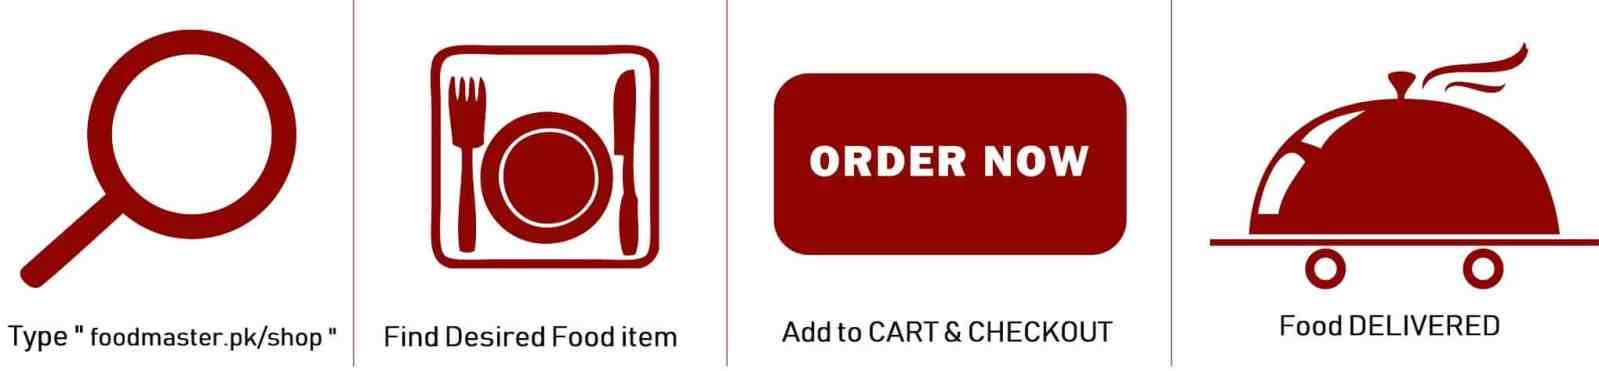 FOOD ORDER PROCESS - Step to follow for online food delivery - delivery in pakistan - food delivery pakistan